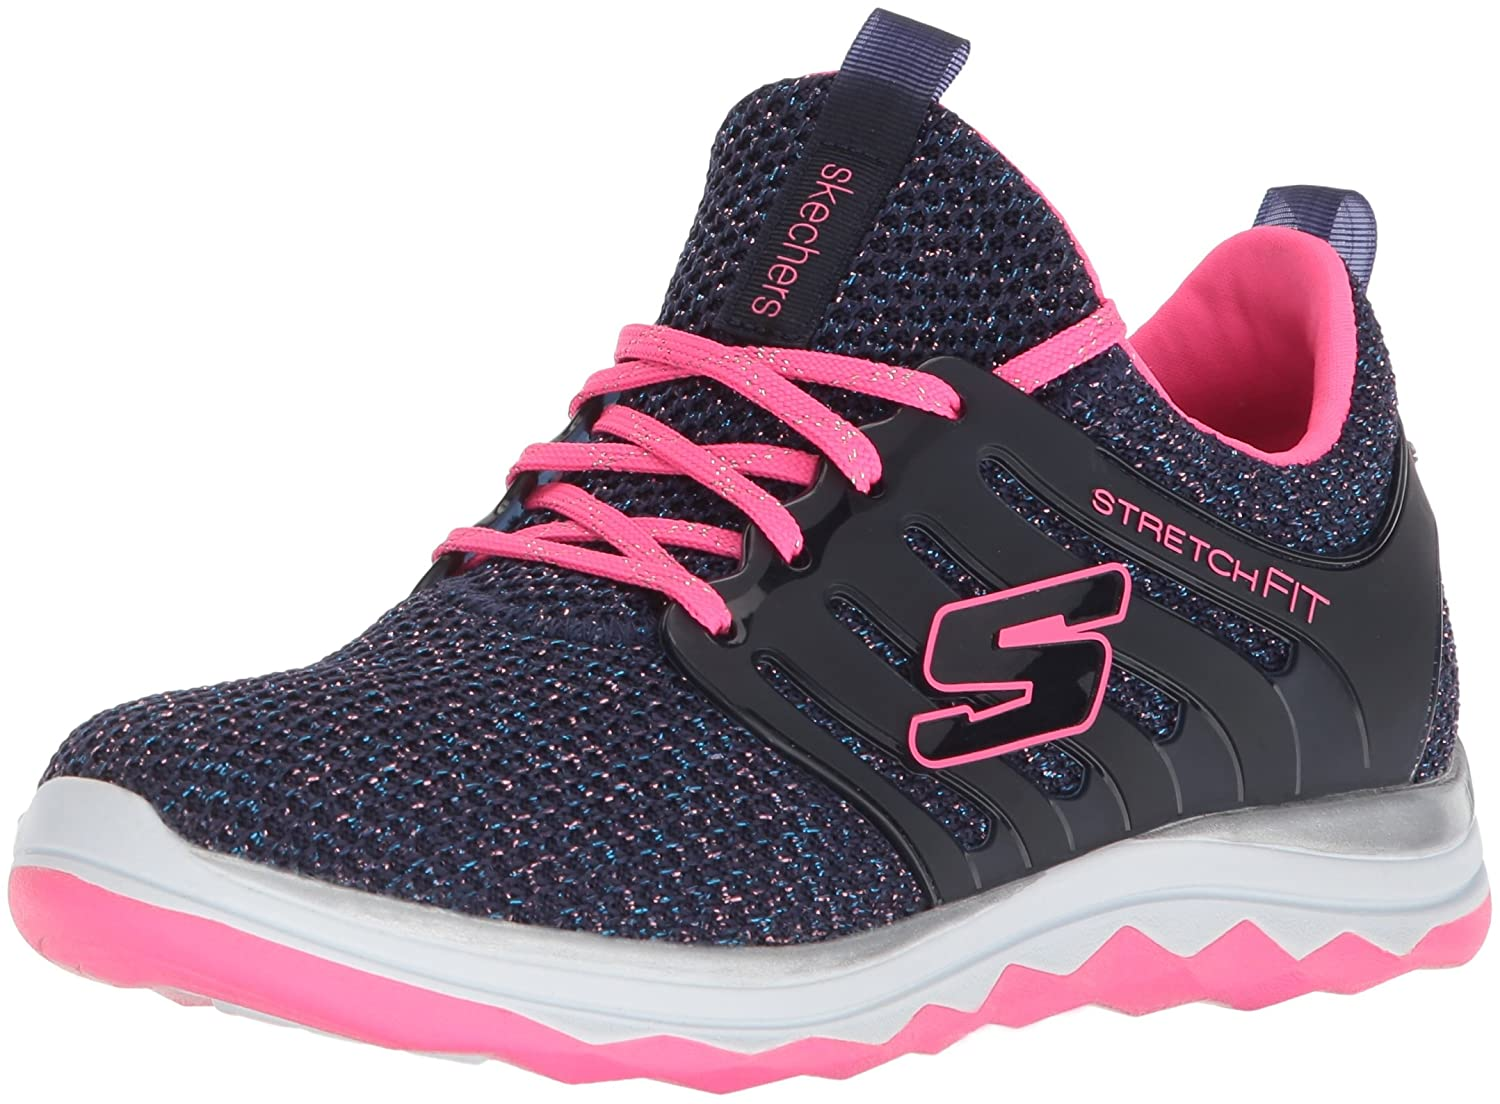 Skechers Diamond Runner, Zapatillas de Running para Niñas, Azul (Navy/Hot Pink), 37 EU 81561L